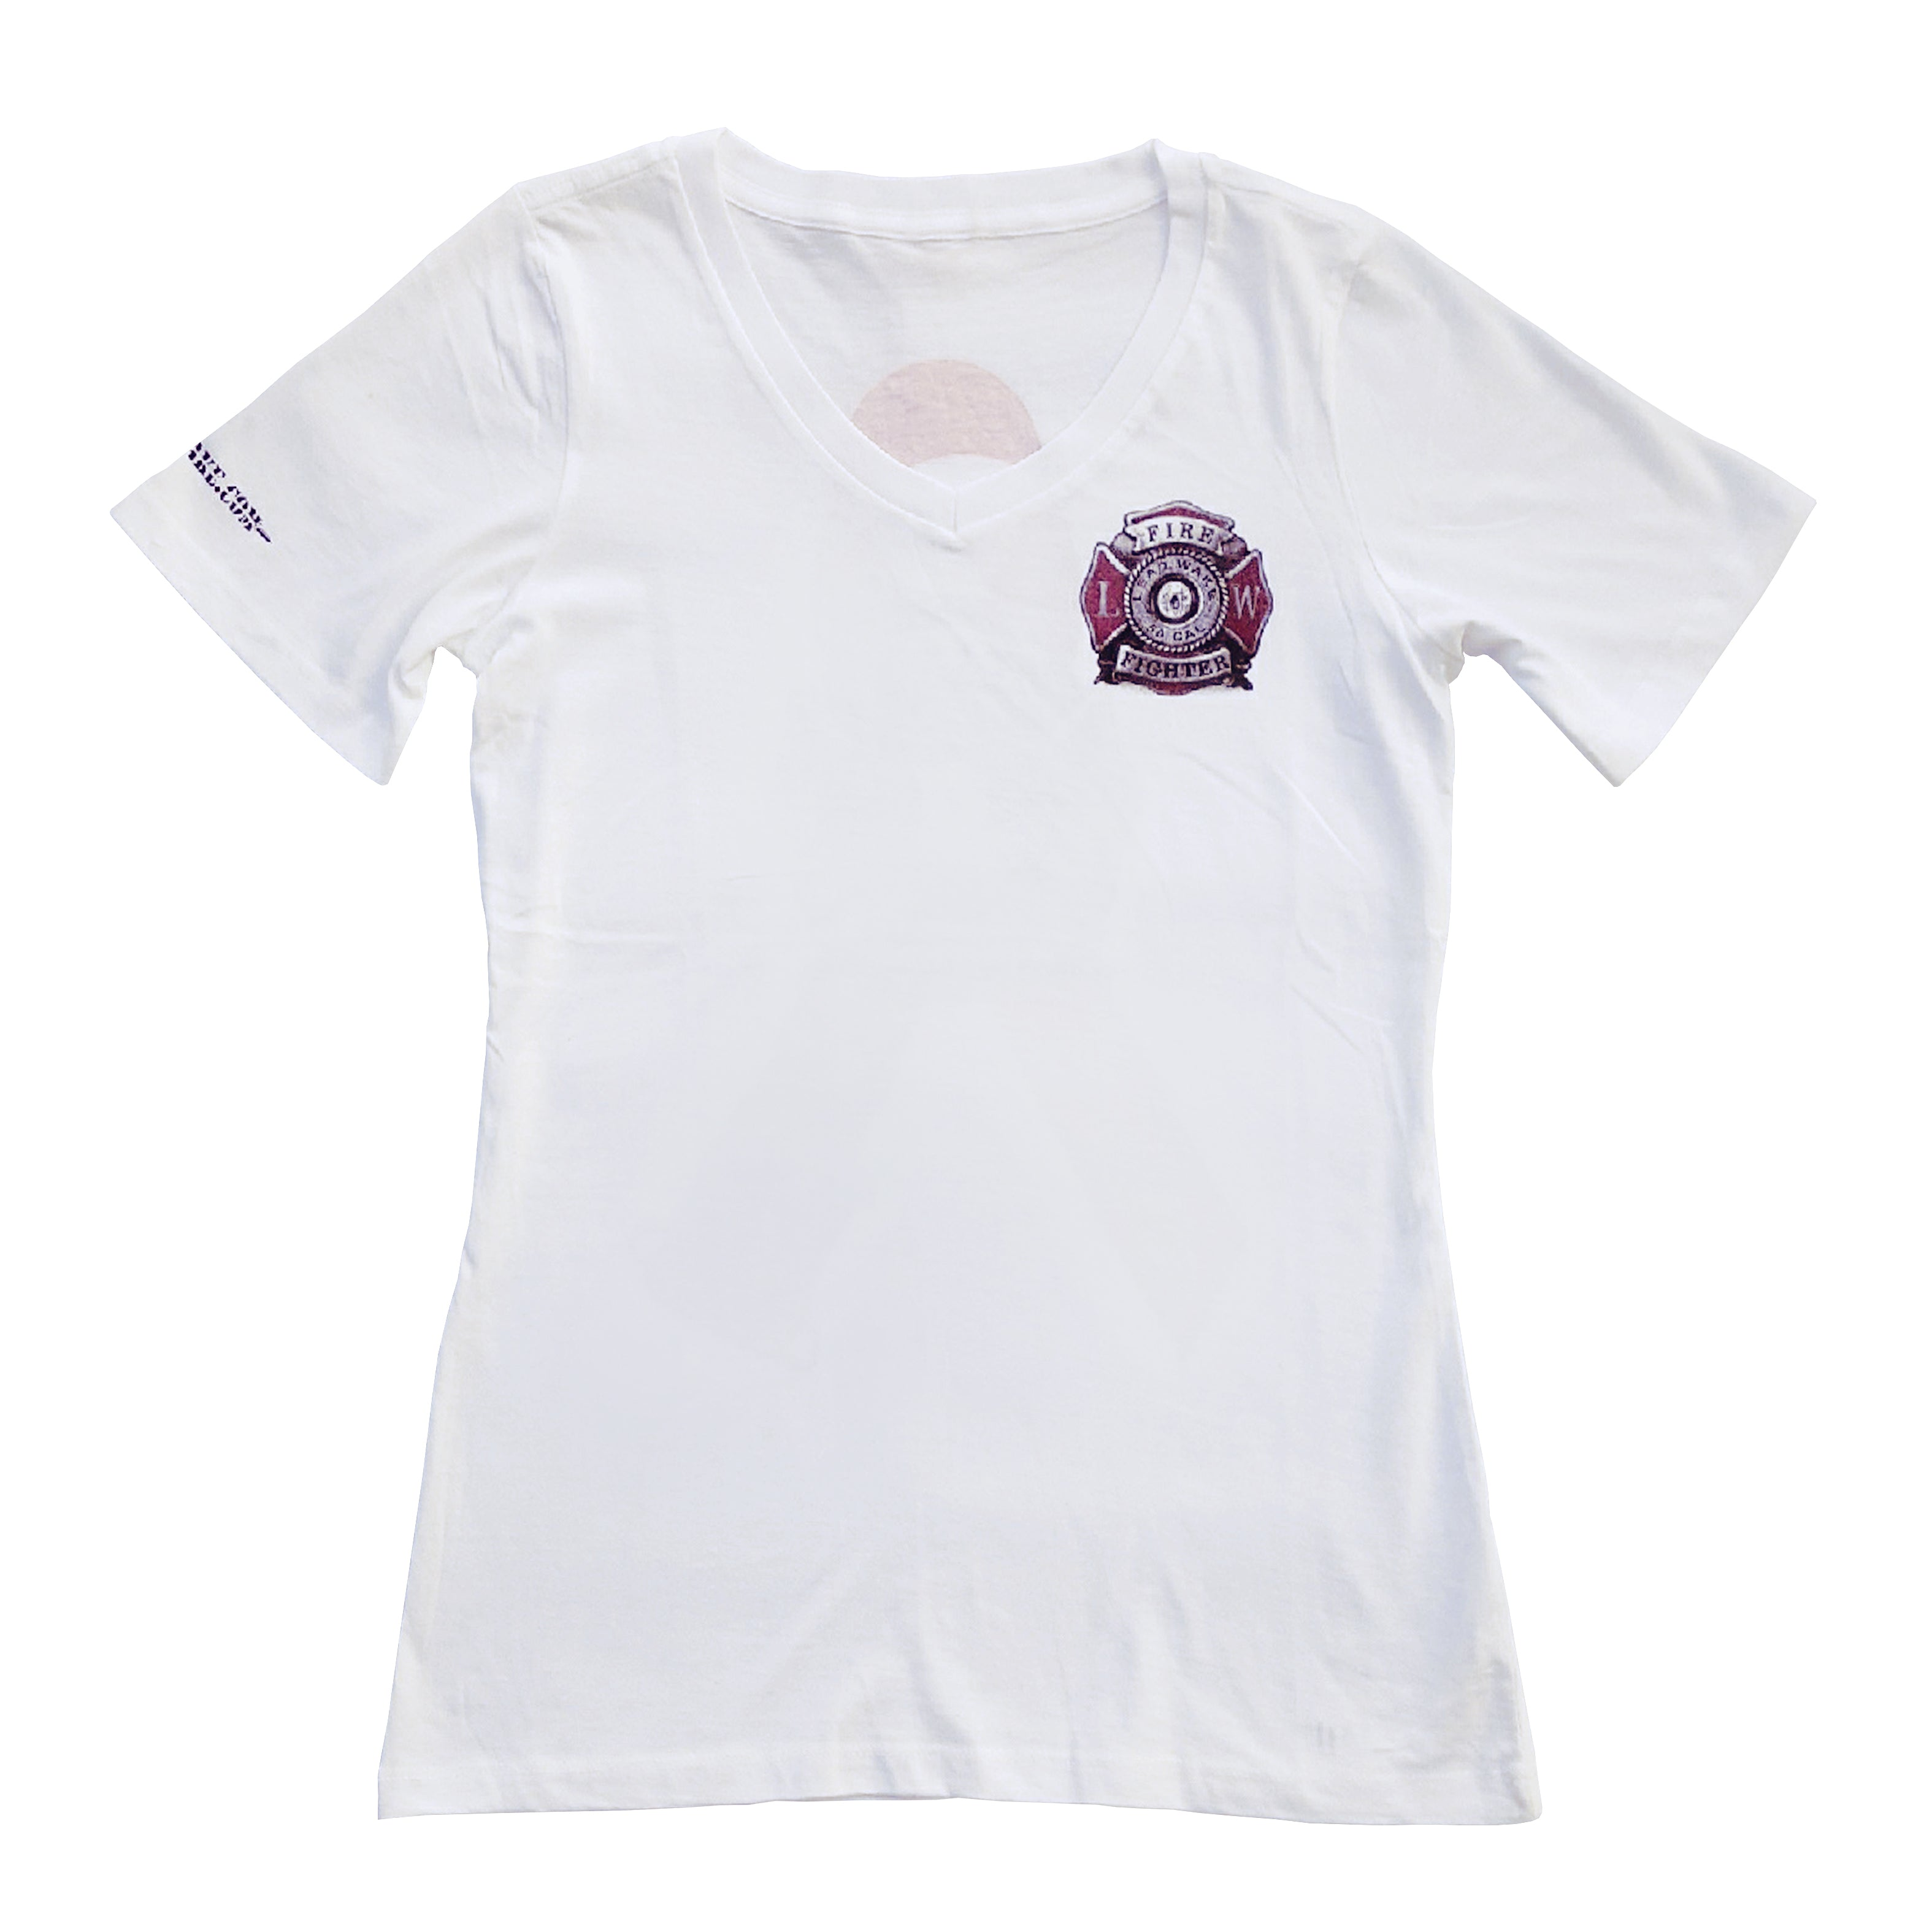 Women's Breast Cancer Awareness<br> T-Shirt in White